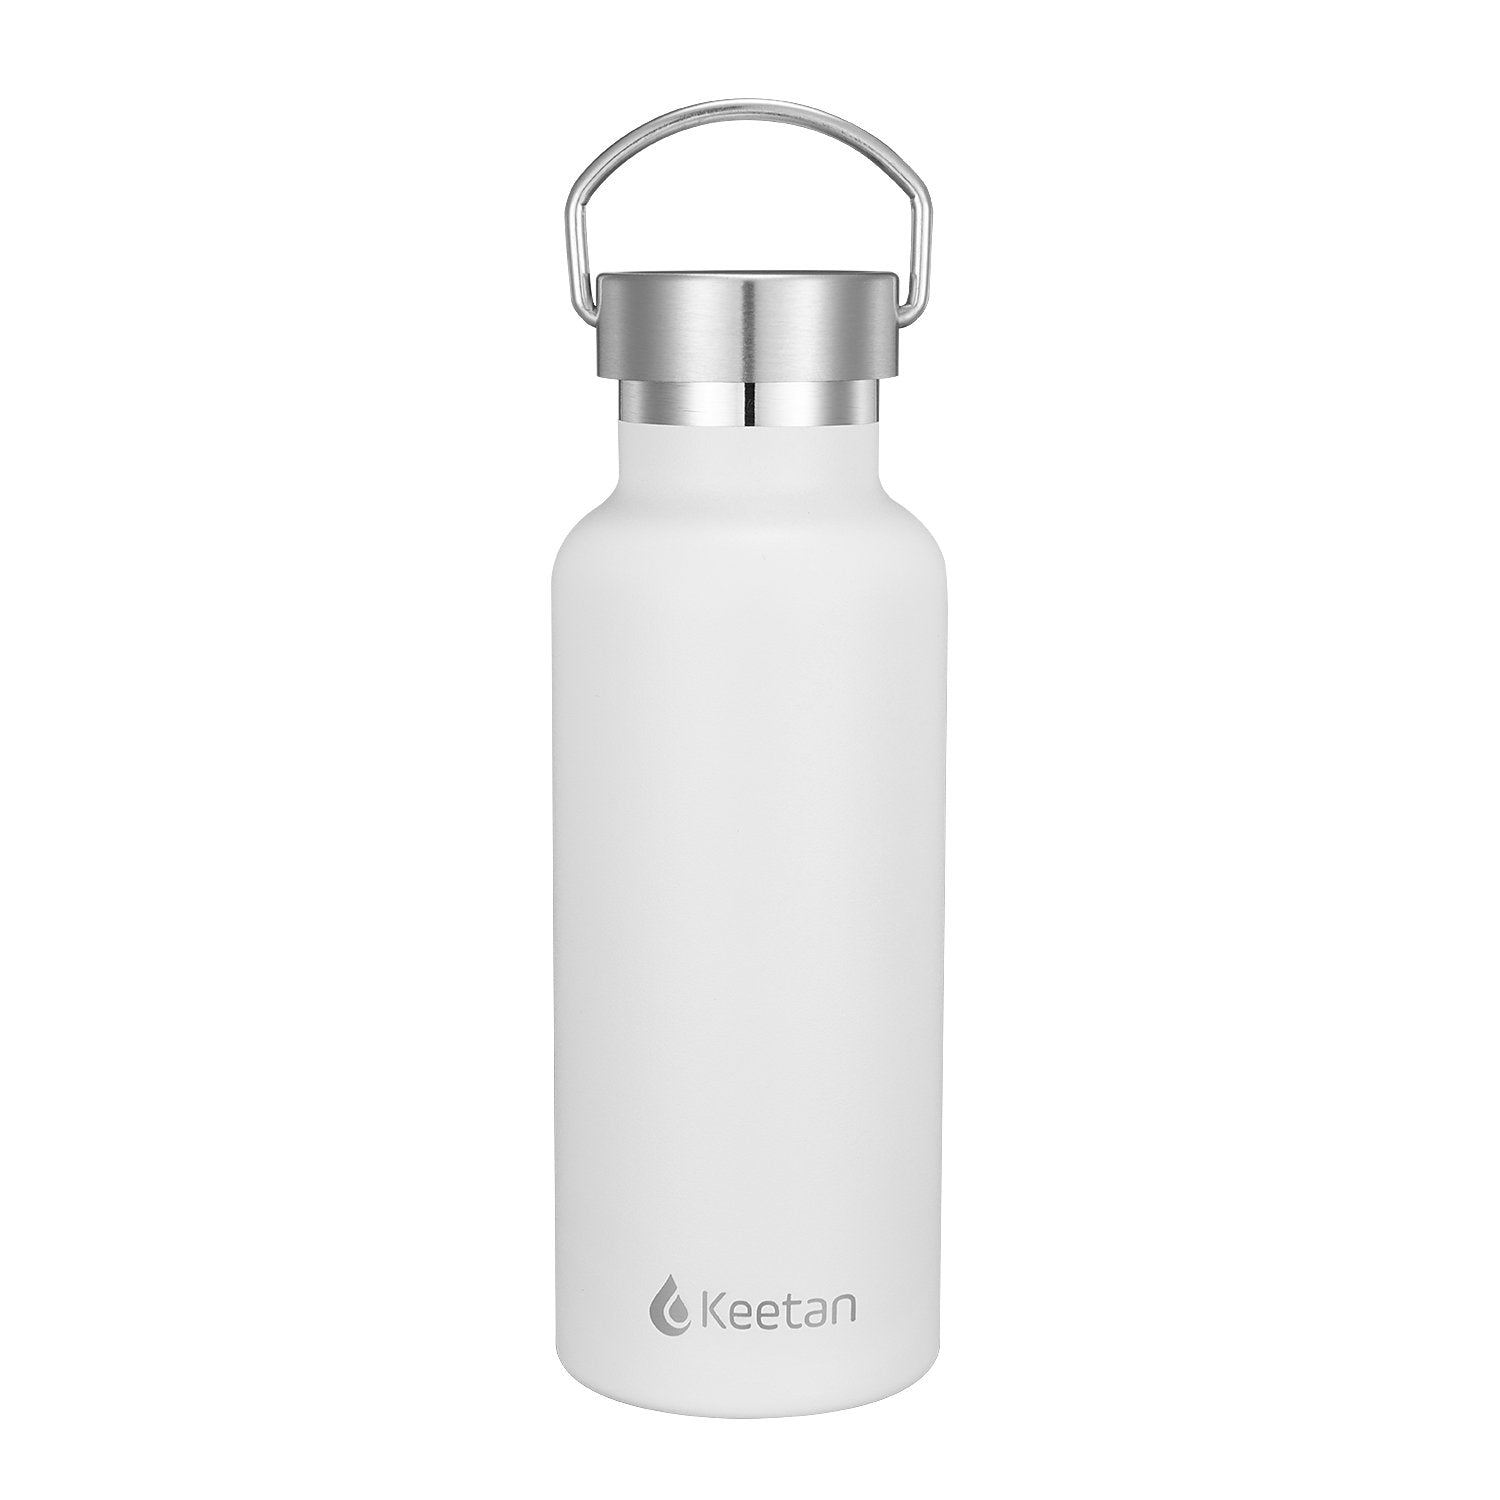 Keetan POLO Water Bottle-White